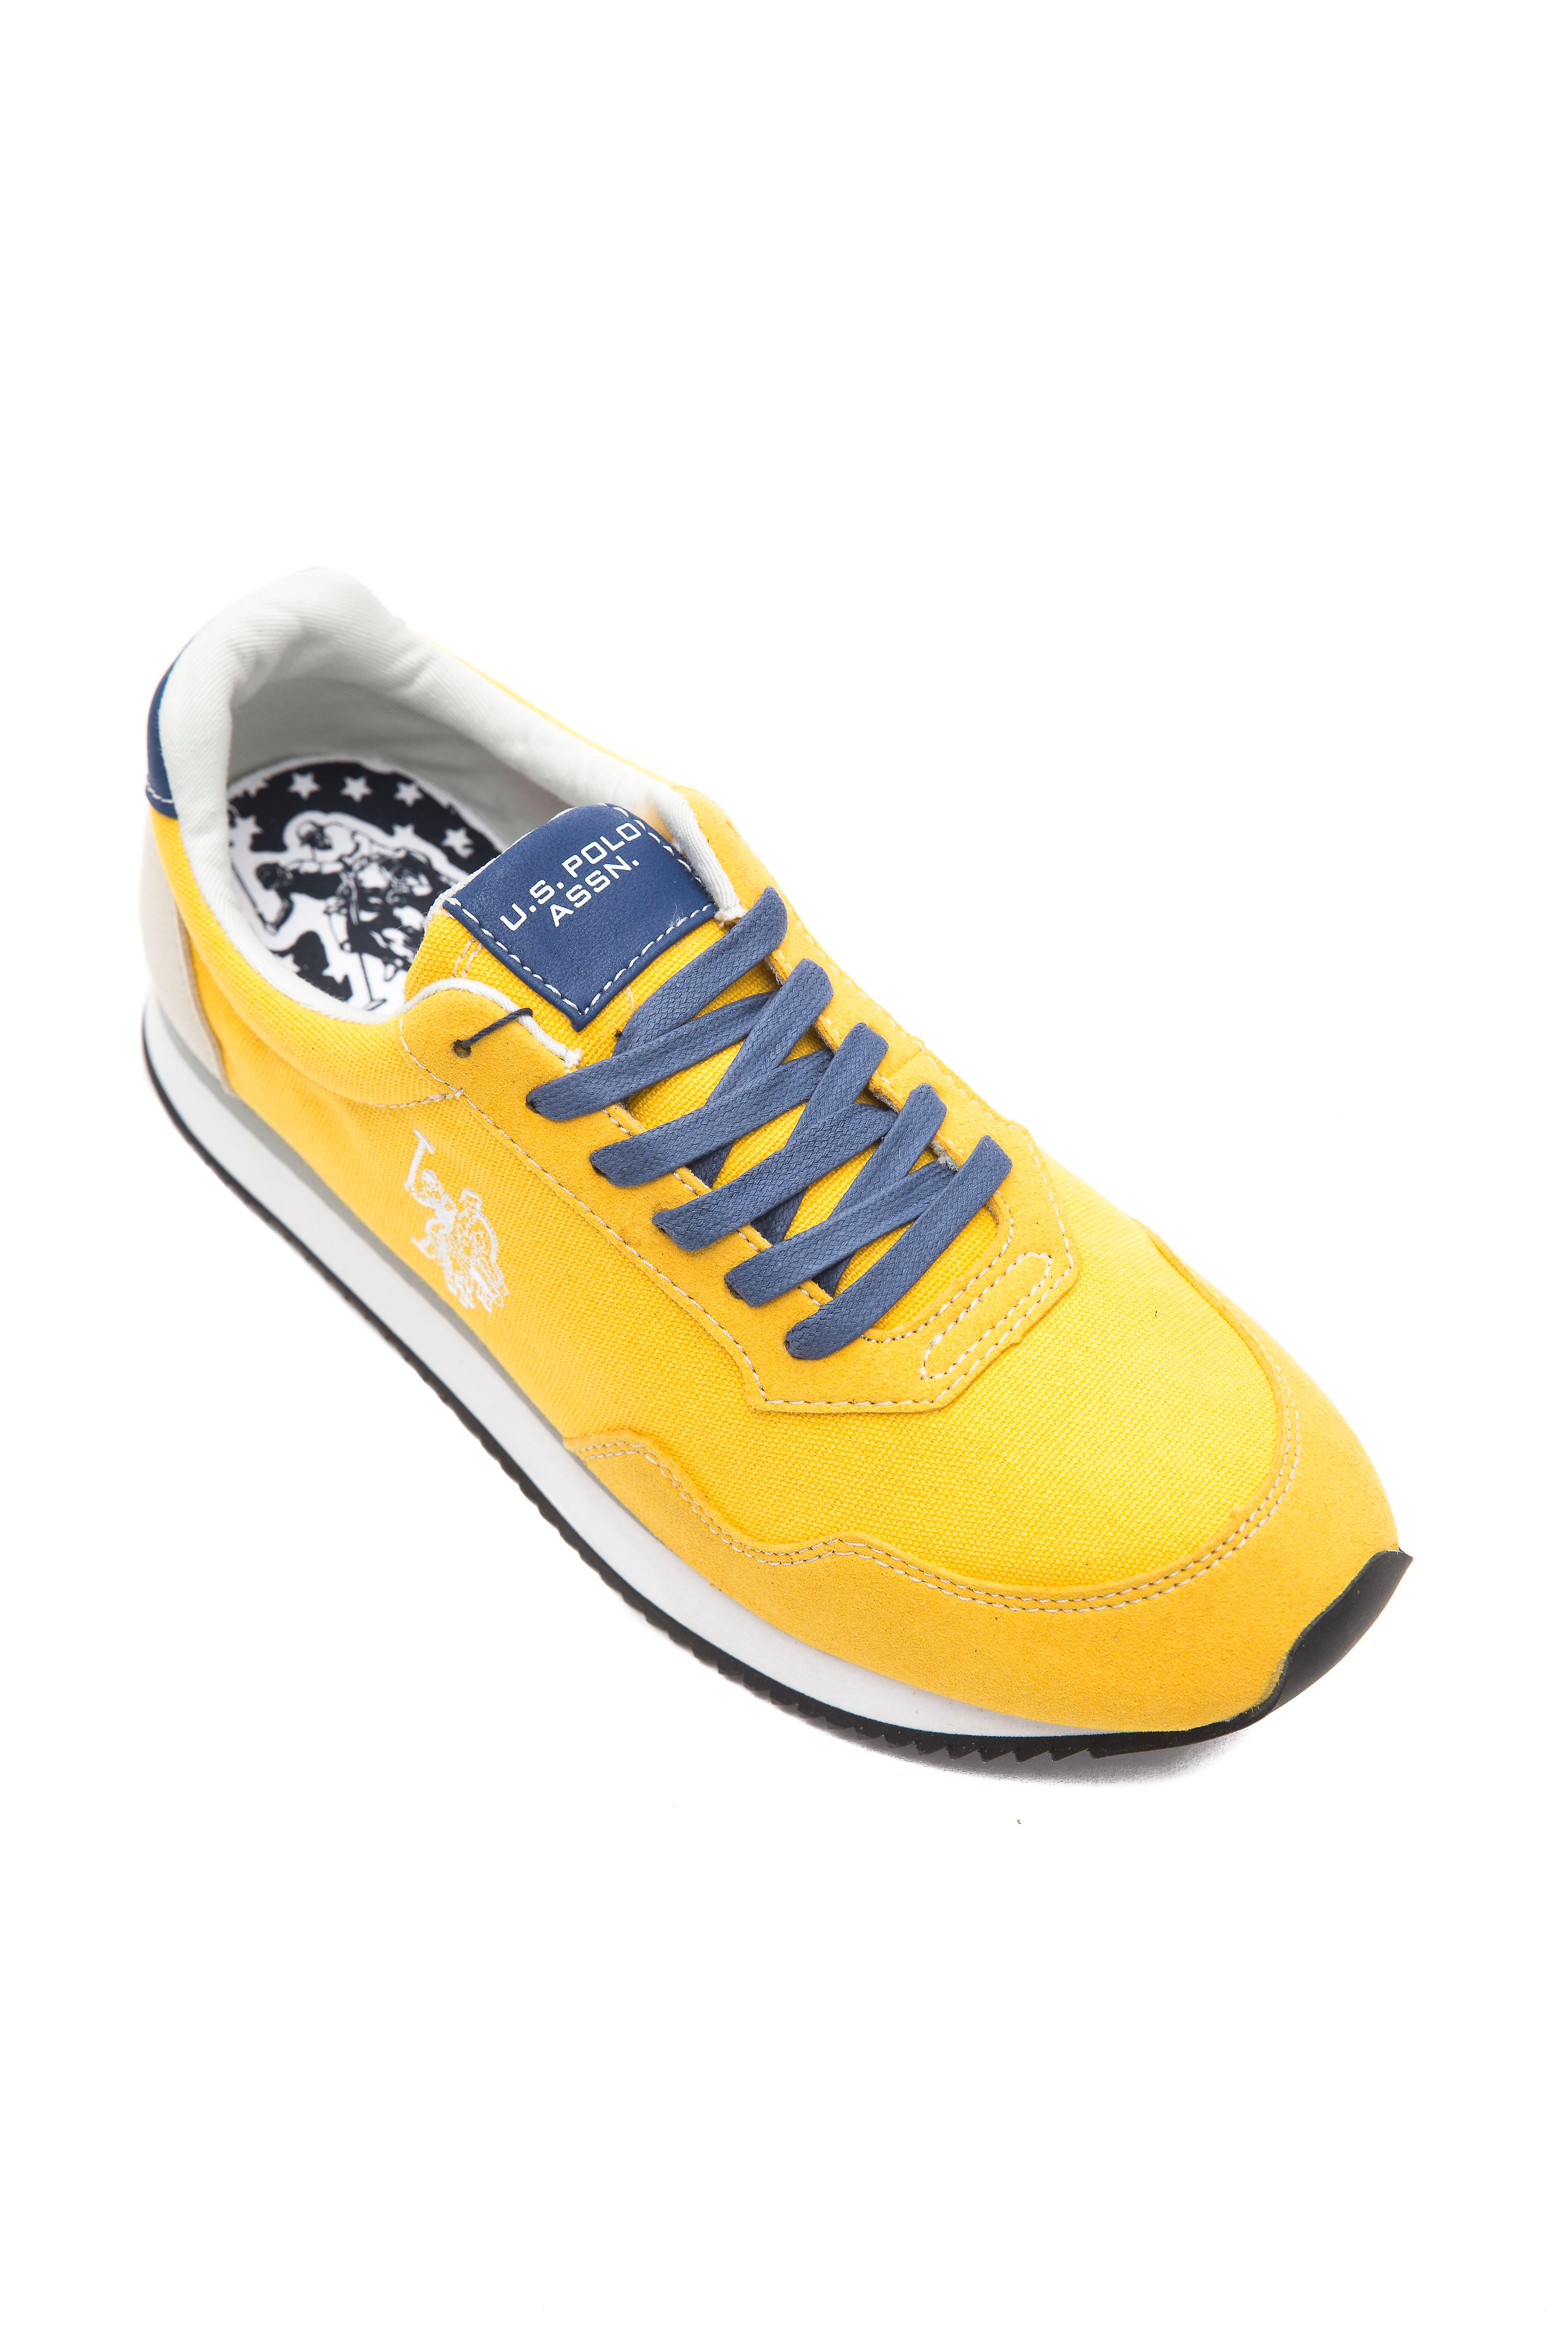 Us Polo Man Raji Sneakers yellow Rpx6X